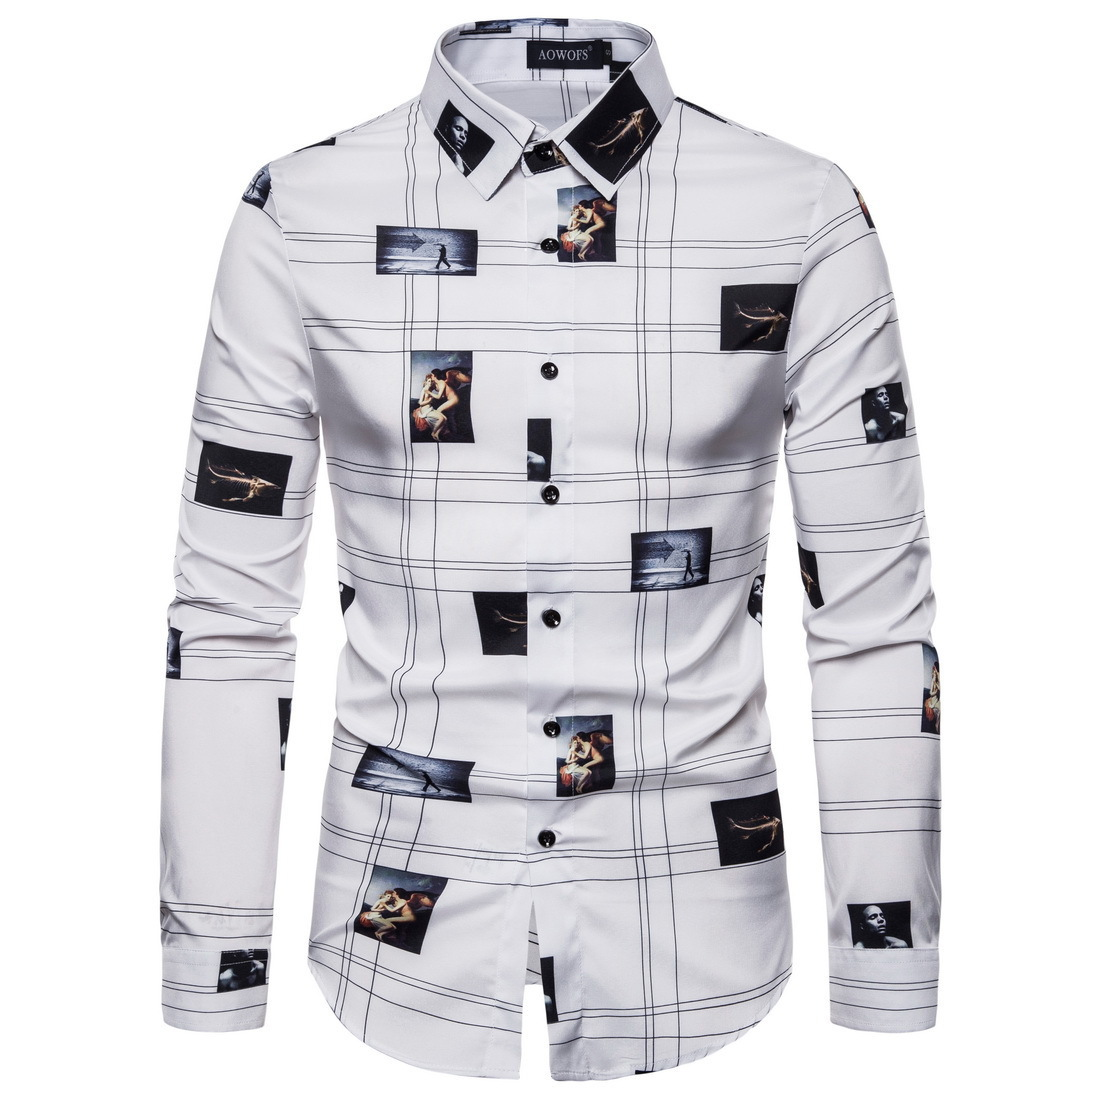 Men's New Business Personality Printing Long Sleeve Spring And Autumn Shirt European Size XXL